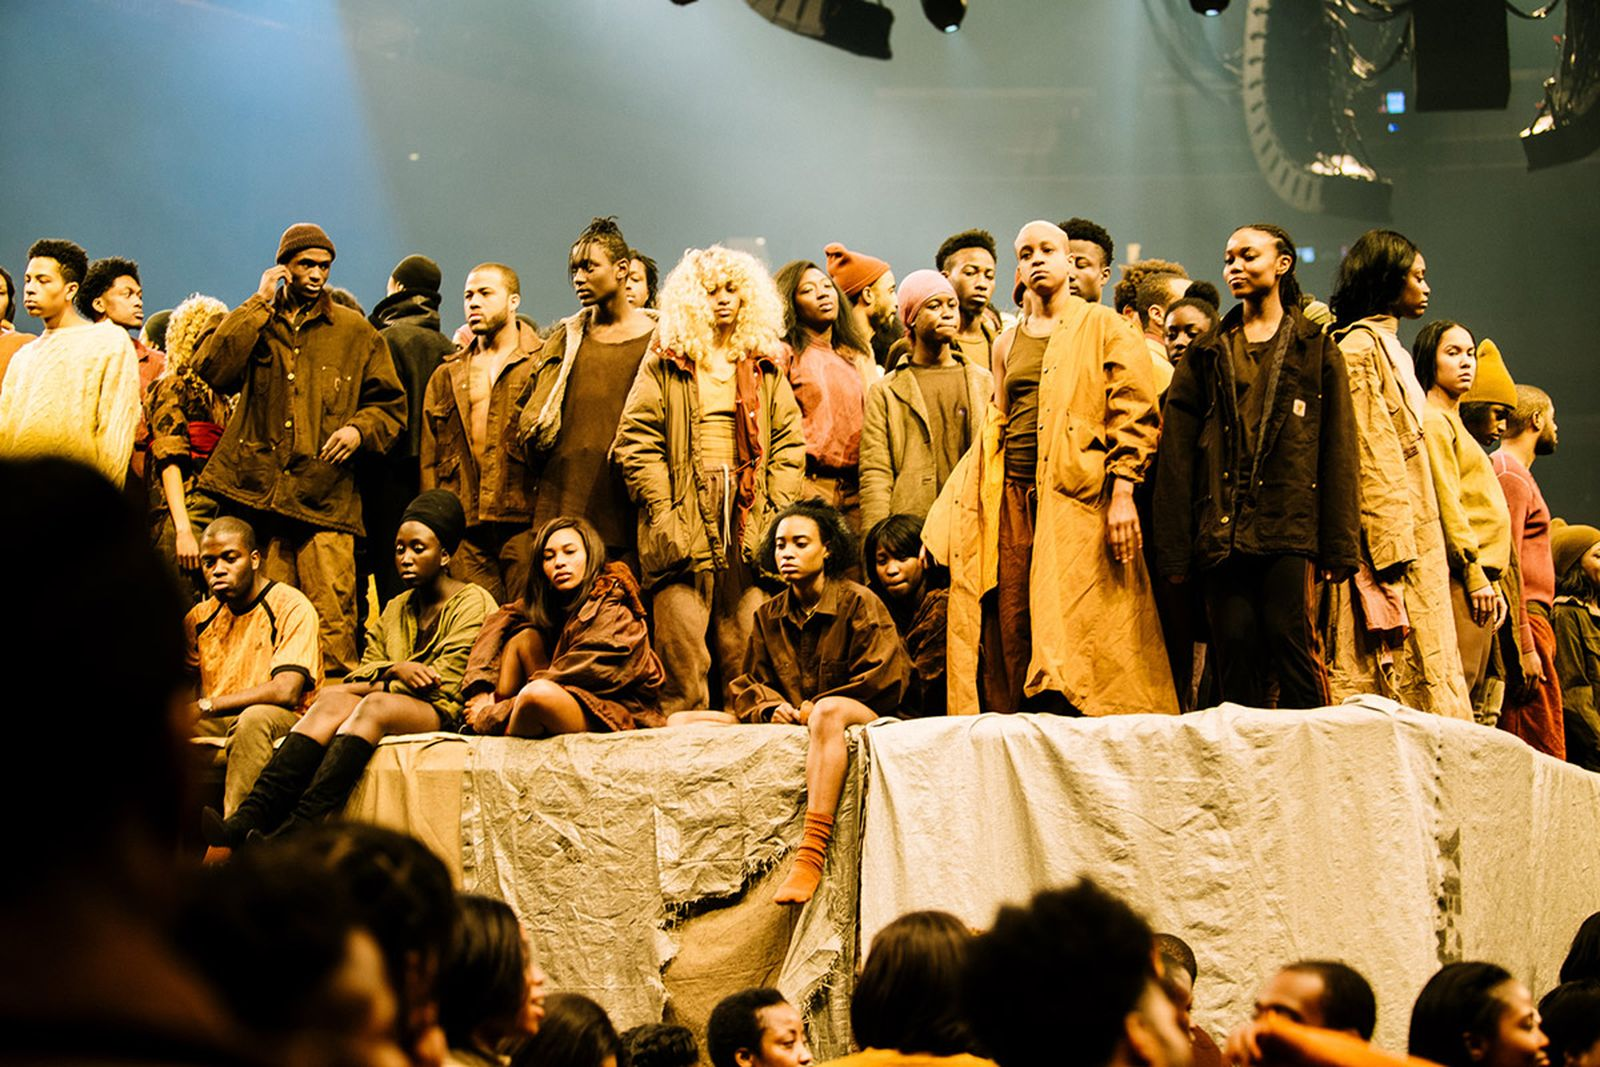 kanye-wests-yeezy-story-so-far-03